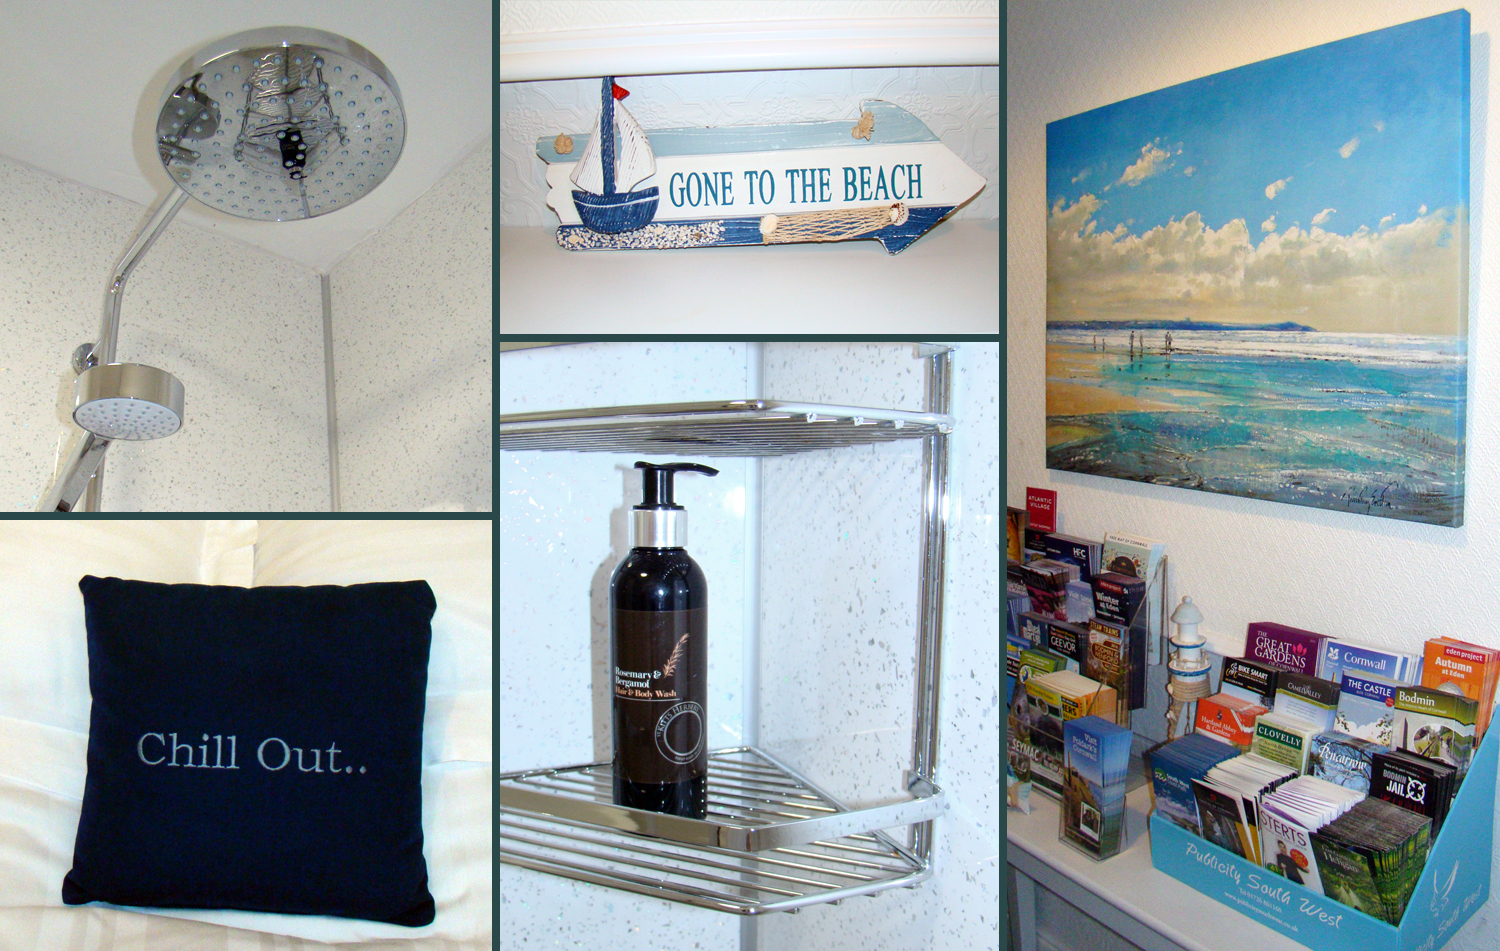 A selection of shots taken around Surf Haven Bed & Breakfast in Bude